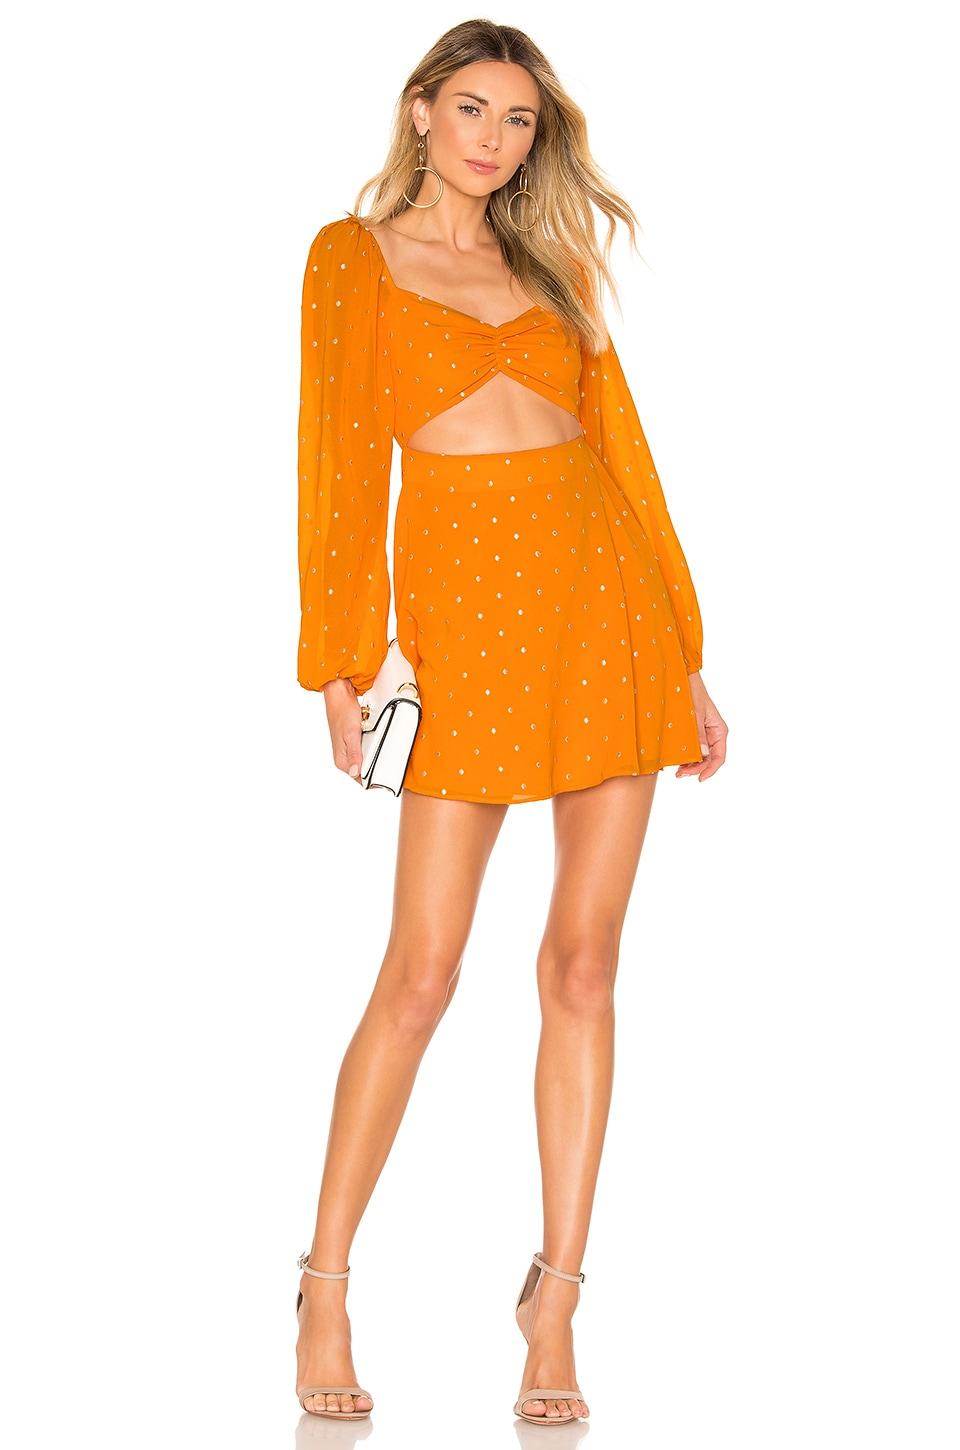 Privacy Please Nich Mini Dress in Marigold